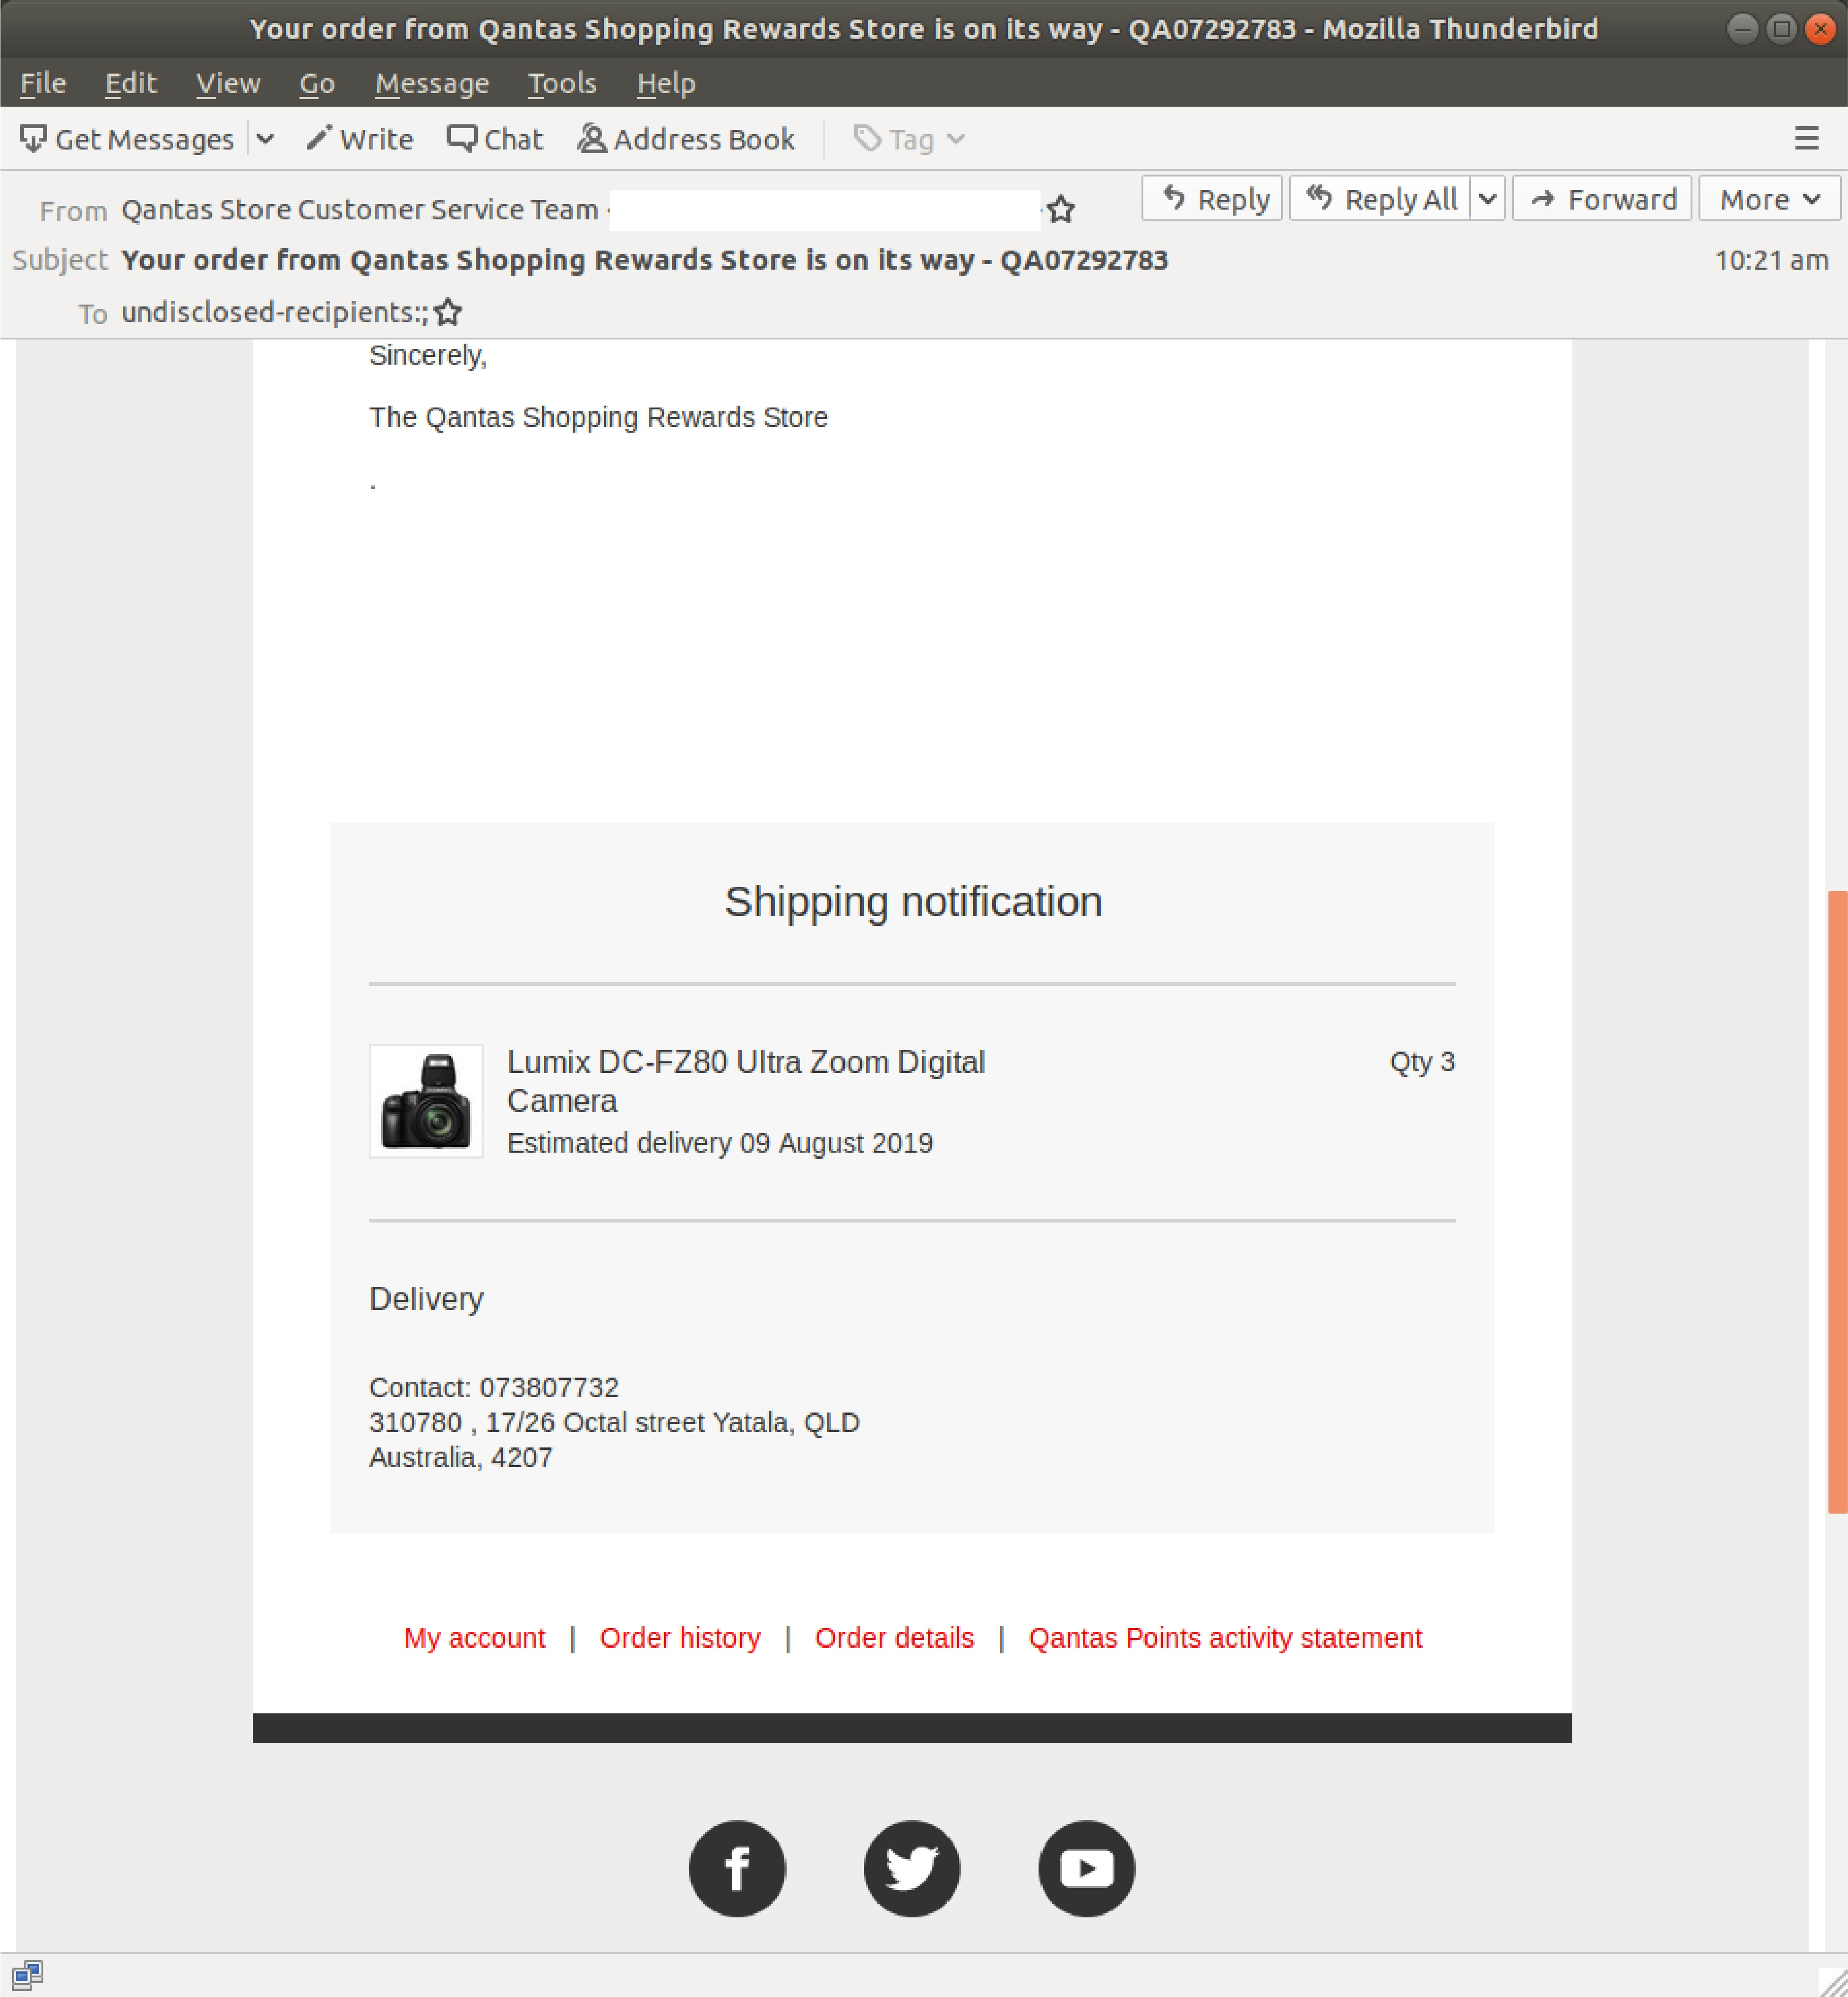 Phishing scam disguised as Qantas Shopping delivery email